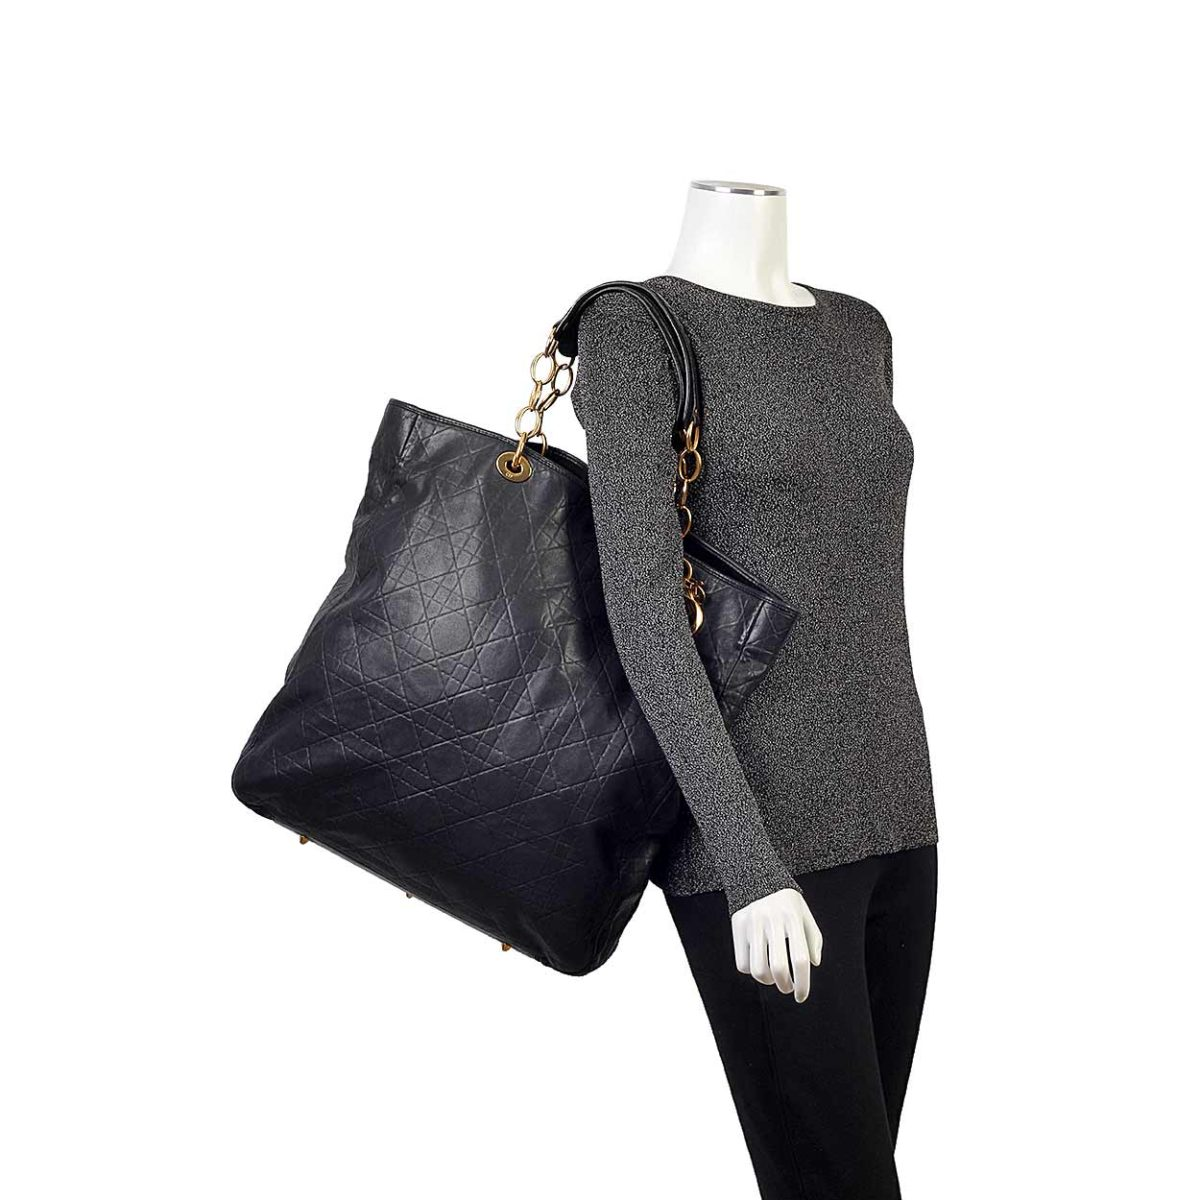 CHRISTIAN DIOR Cannage Quilted Lambskin Leather Soft Shopping Tote Bag Black 579f529f8d0a6